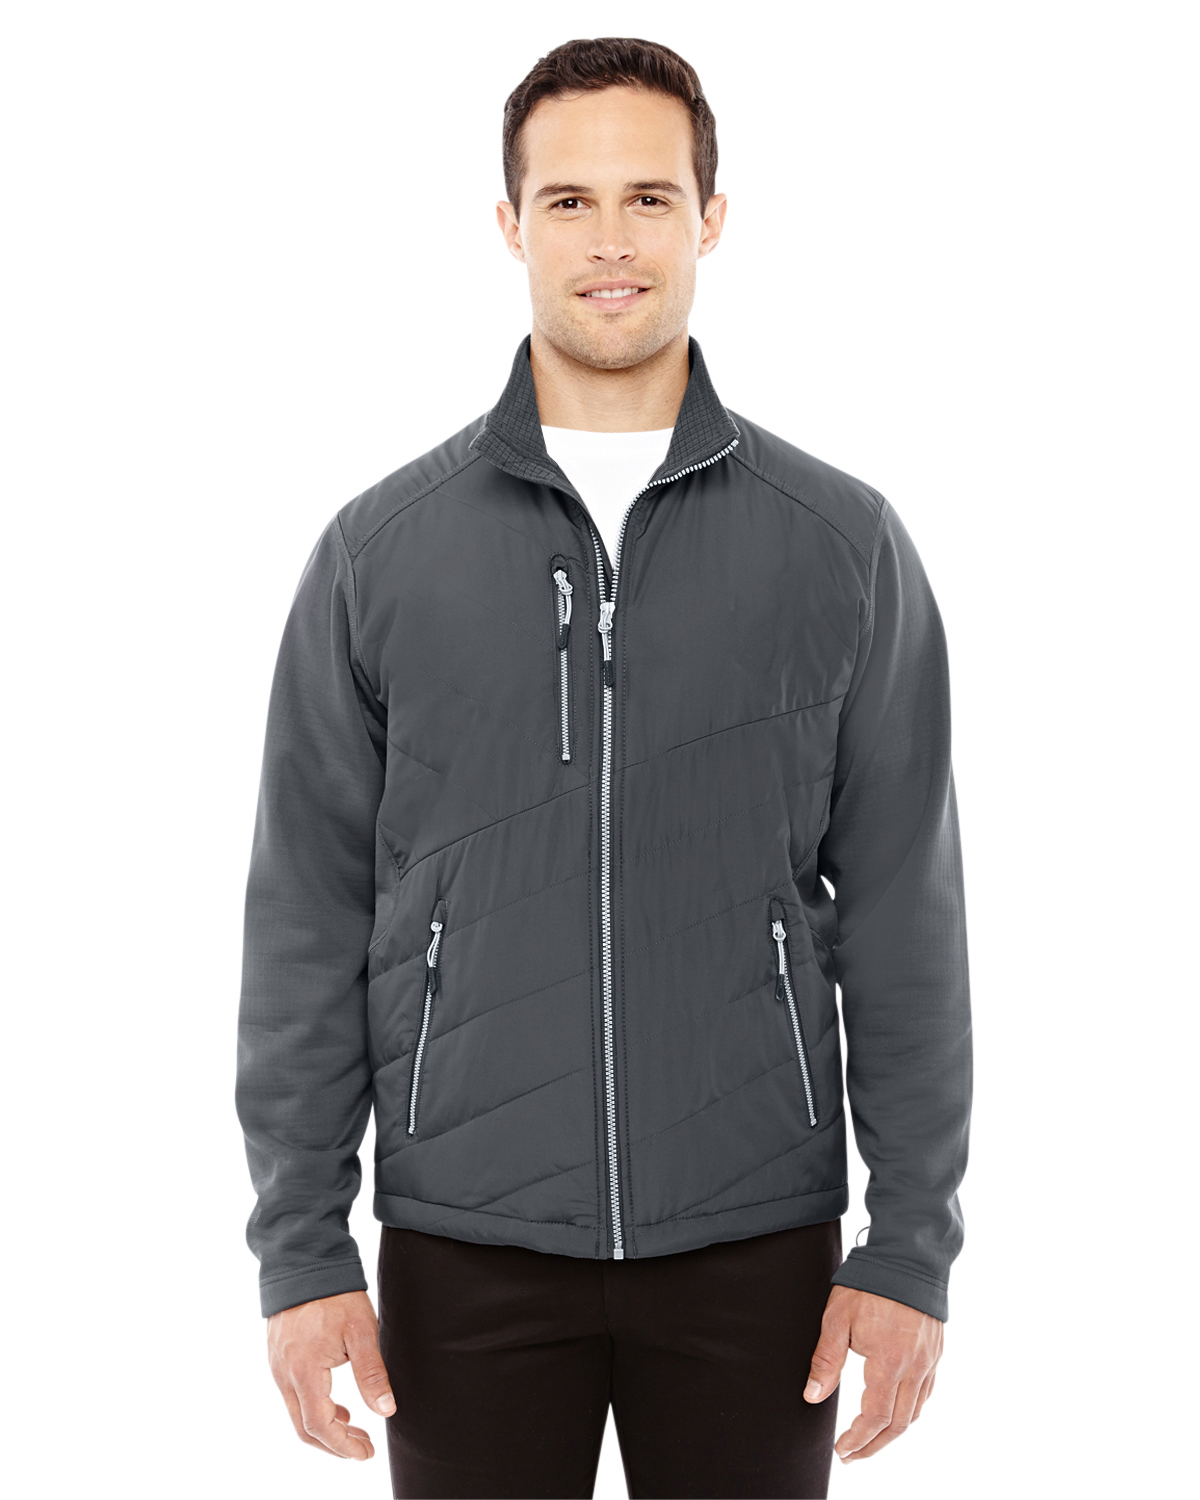 Ash City - North End Sport Red 88809 - Men's Quantum Interactive Hybrid Insulated Jacket